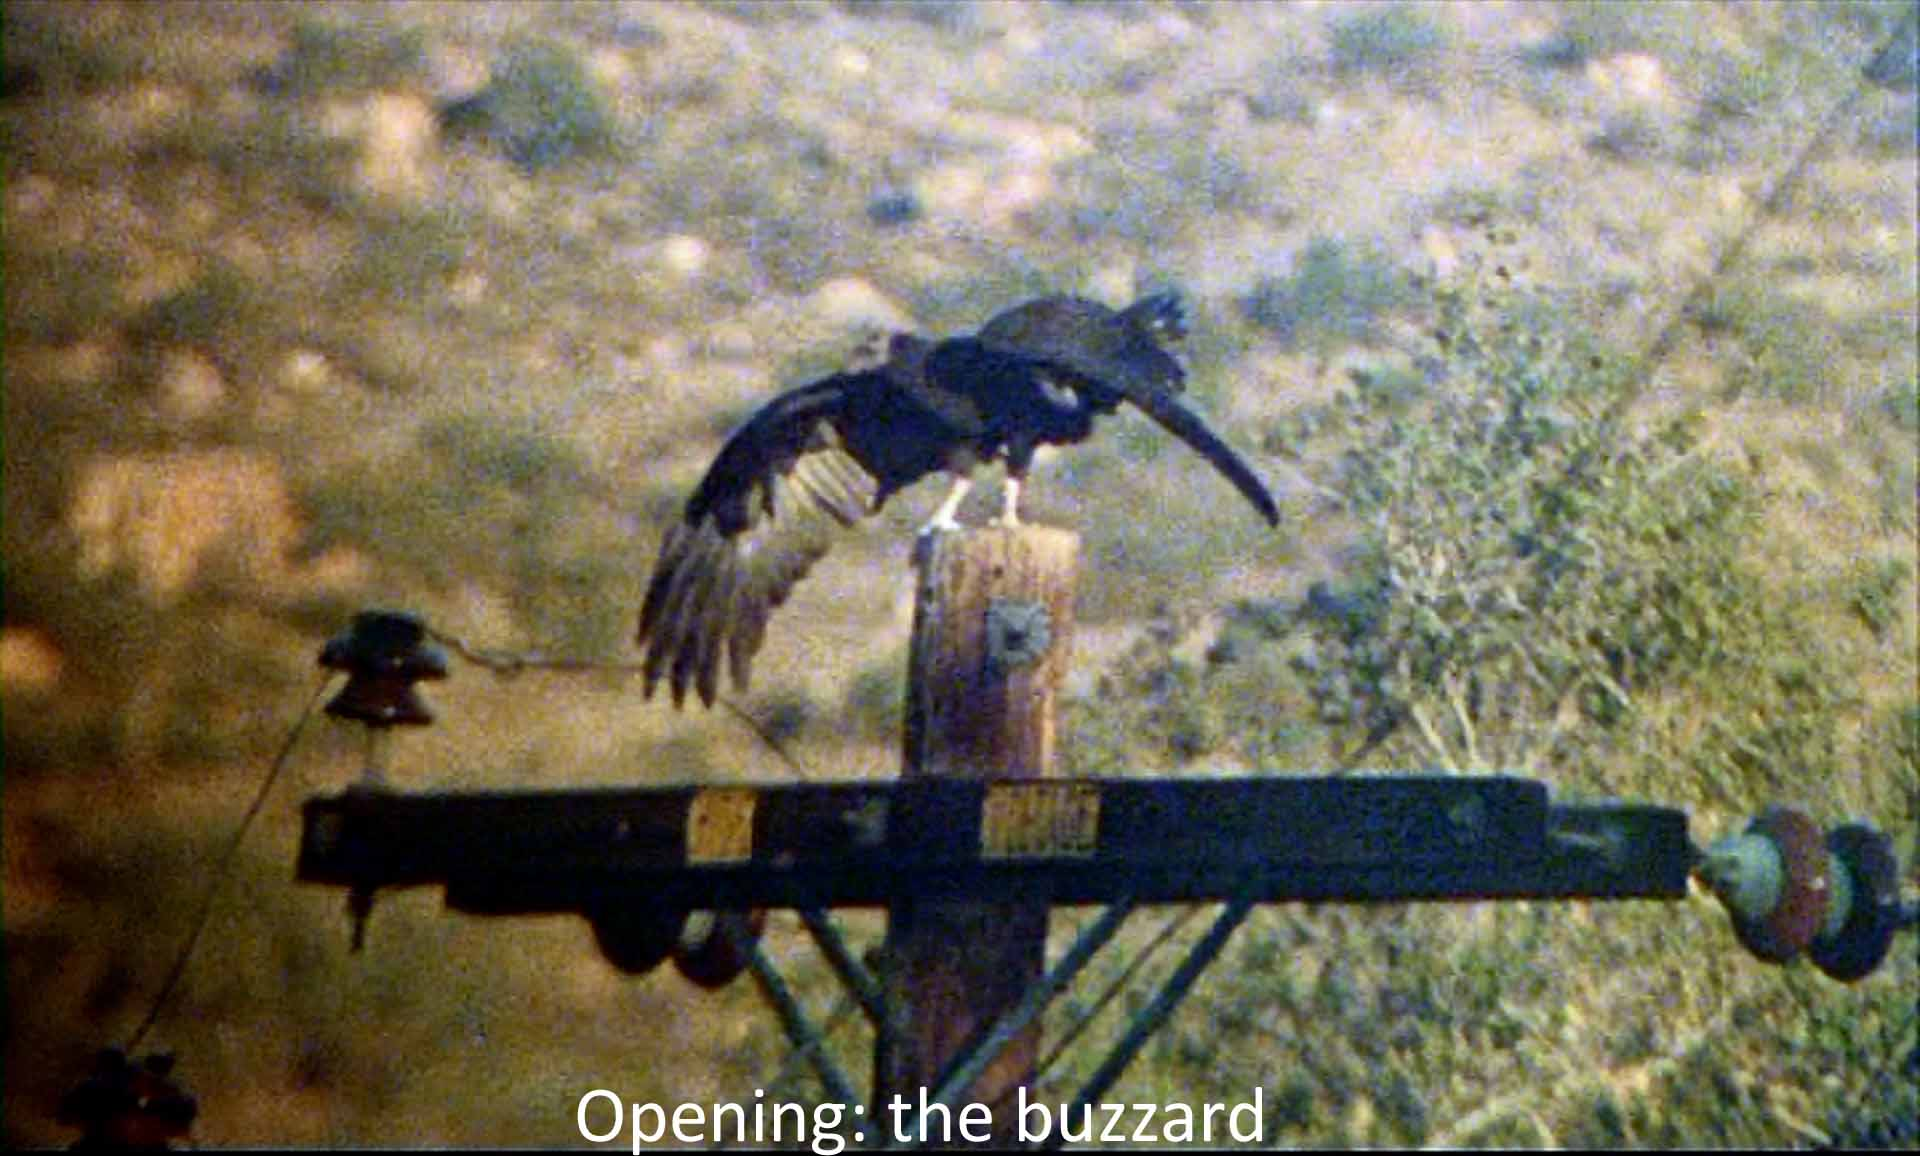 Opening: the buzzard